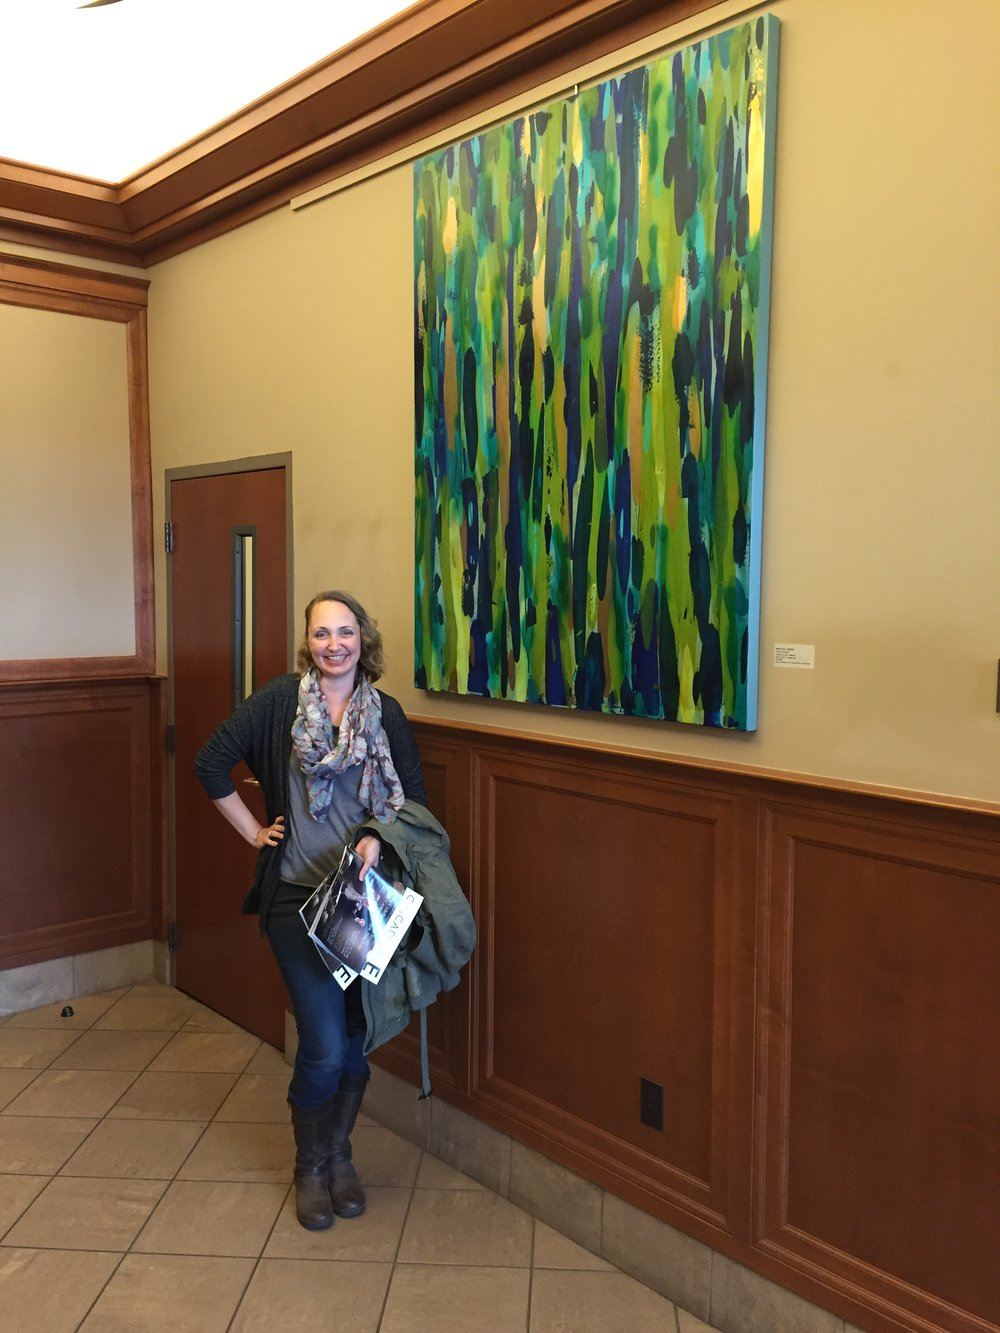 Saying Hello to my big painting at Franklin Crossing. Does this painting make me look short?